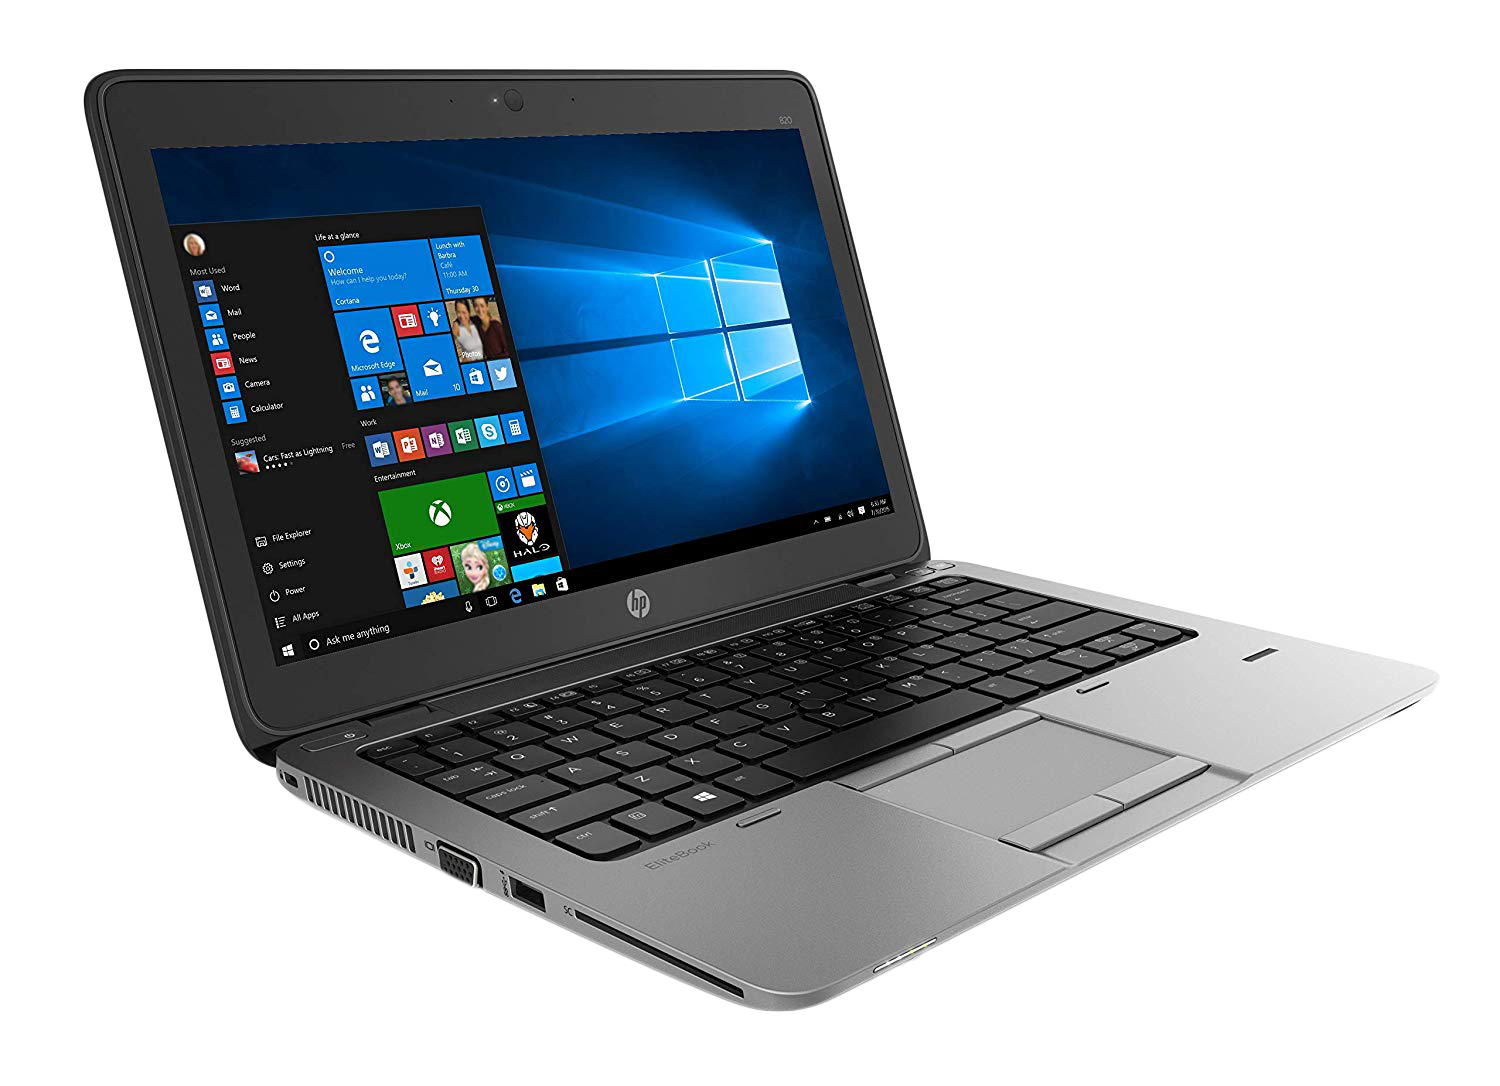 HP EliteBook 820 G1 Ultrabook Laptop i5-4300U 1.90GHz 4GB RAM 250GB HDD (Customisable)